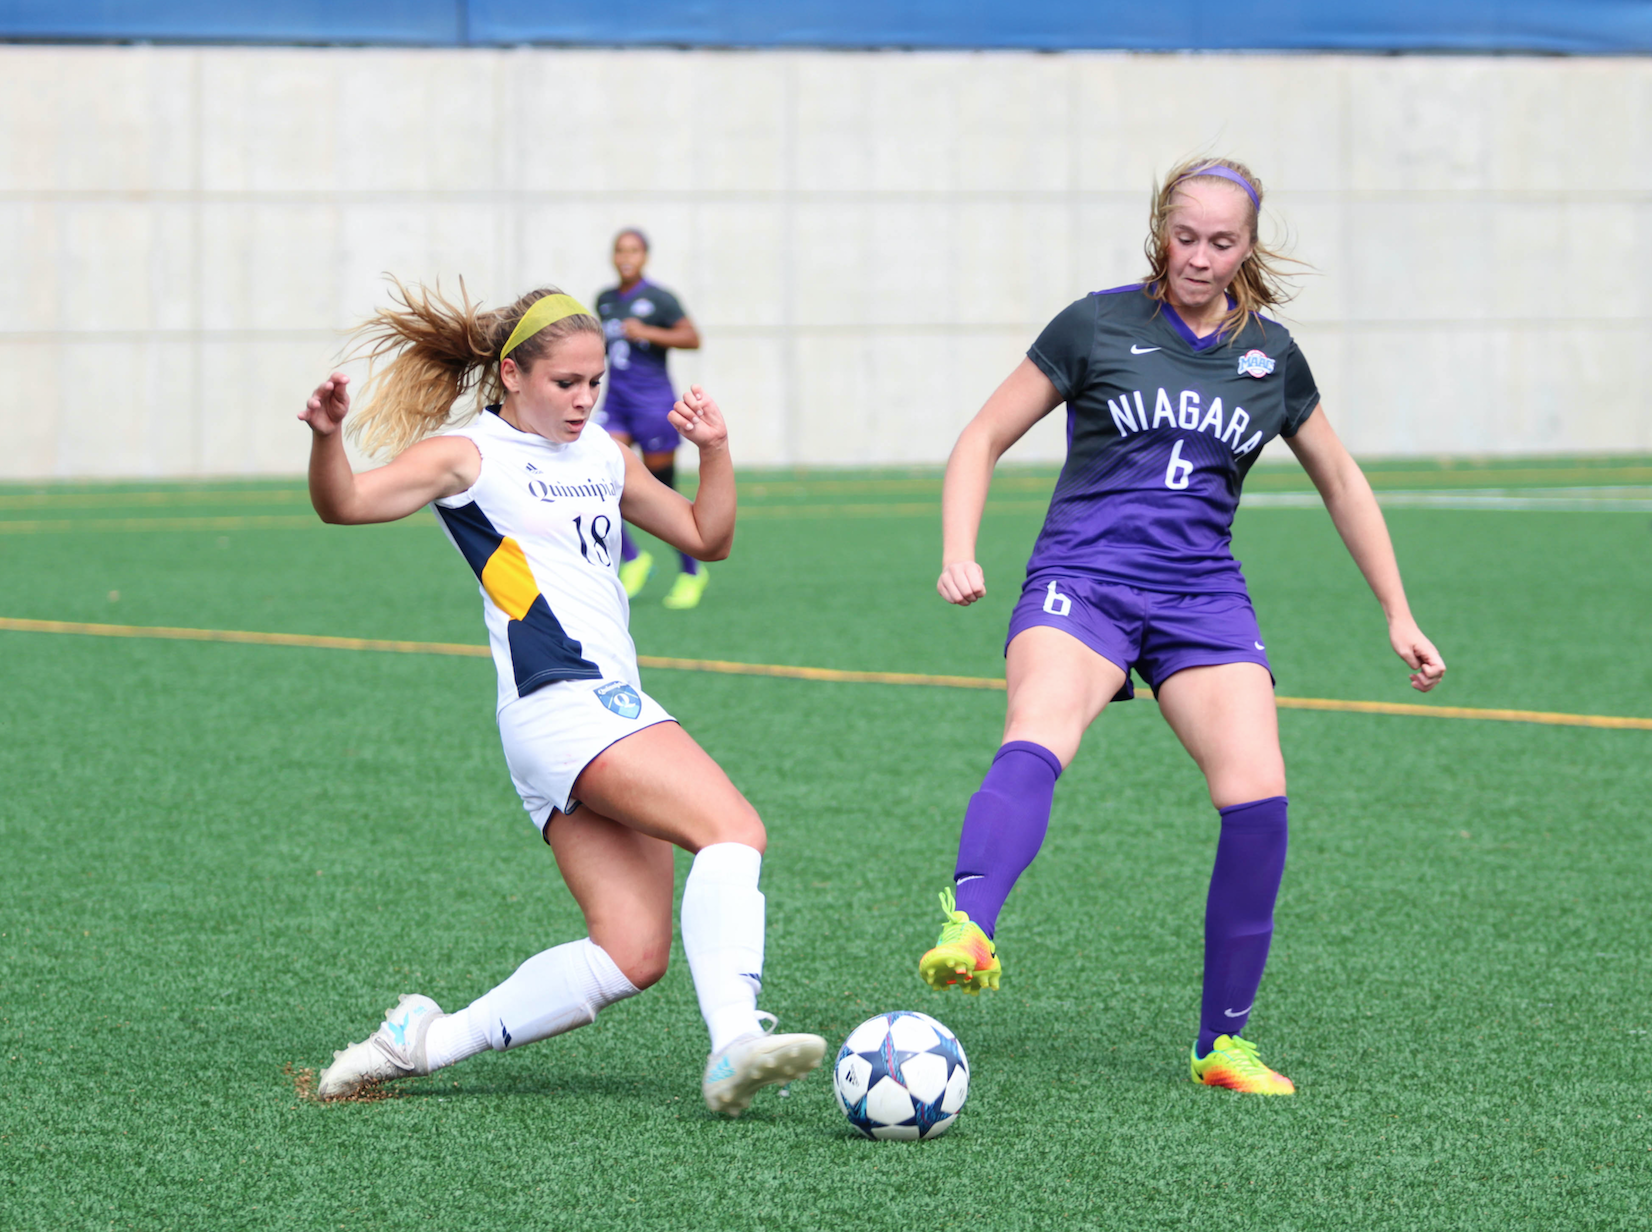 Quinnipiac cruises to Senior Day win over Niagara